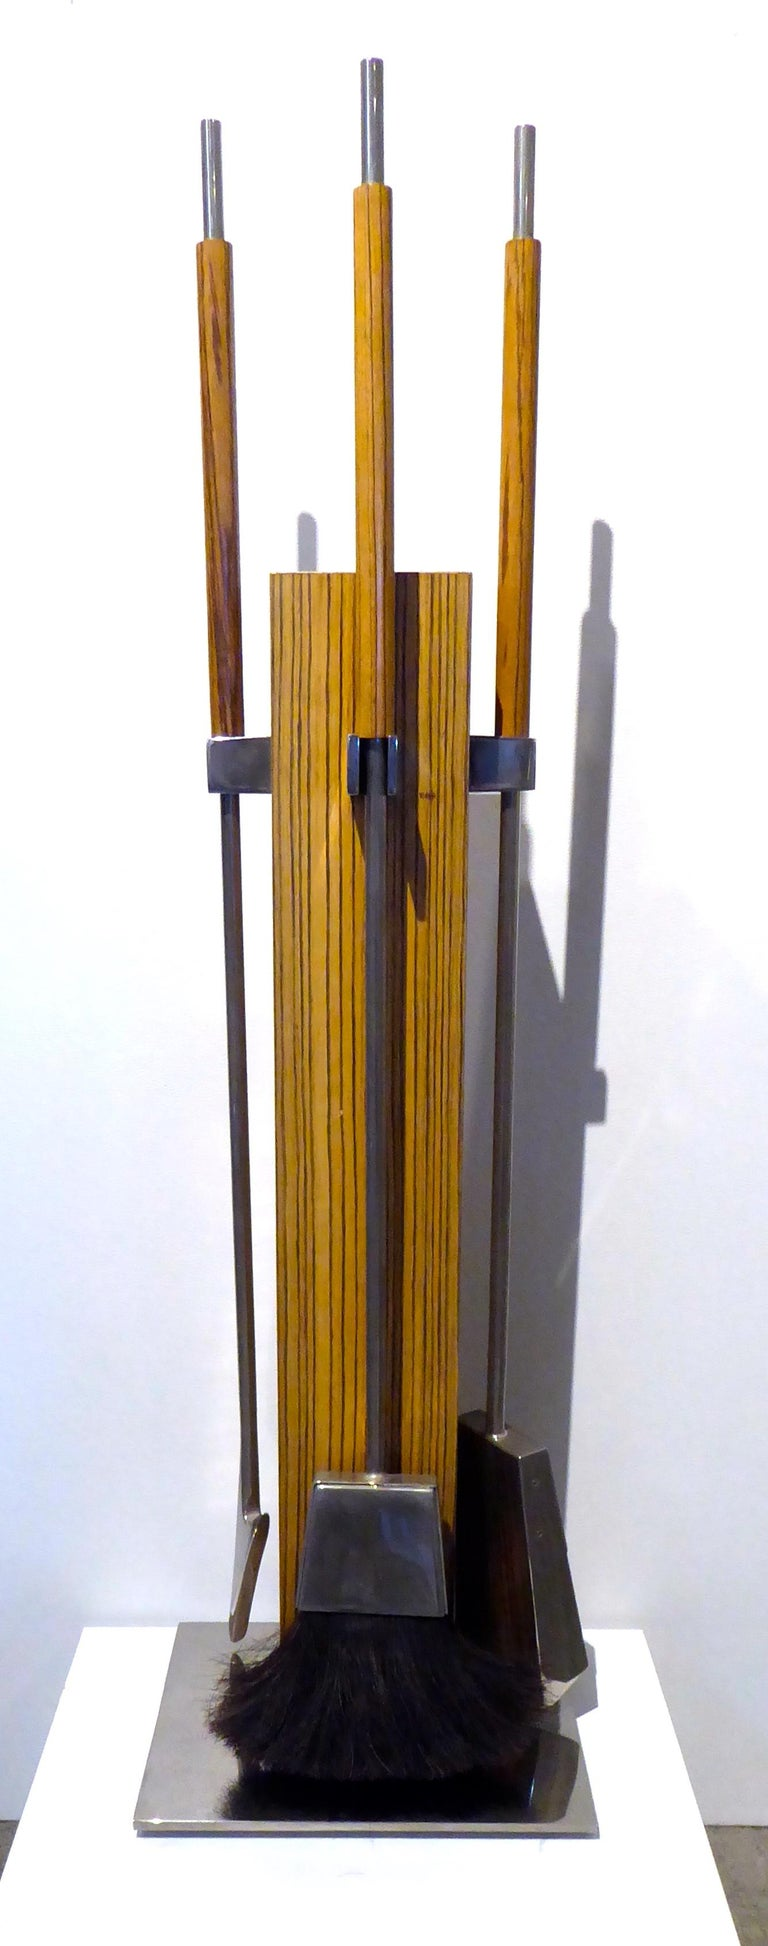 A four-piece zebra wood and chrome-plated steel fire tool set designed by Allessandro Albrizzi in the 1970s. These sets are generally seen in Lucite but the zebra wood was an available option.